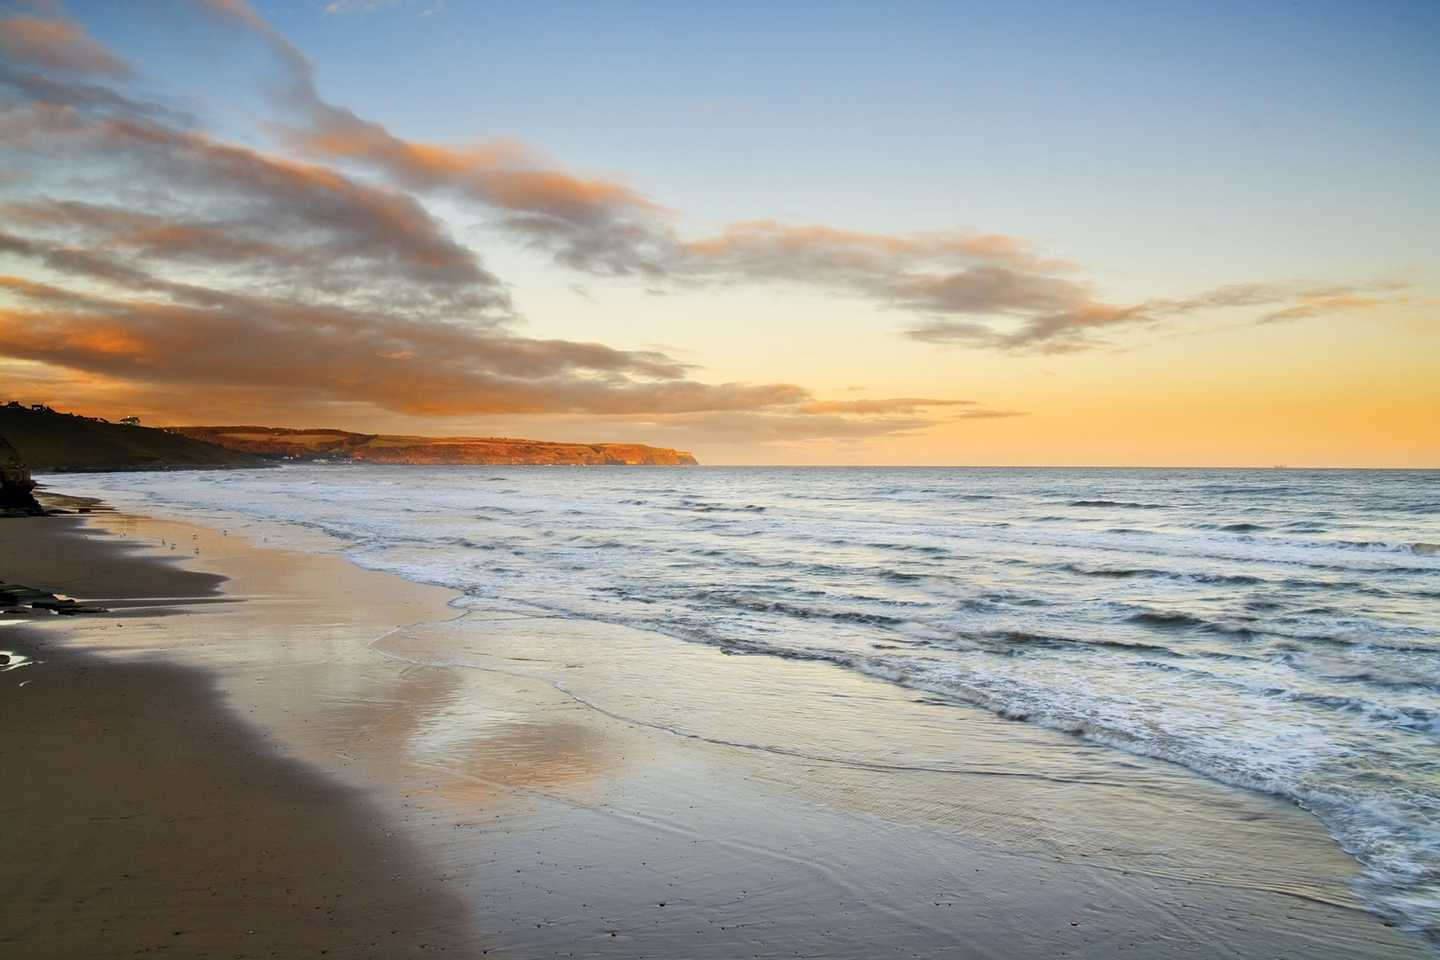 Golden sand, blue sea and sunset at Whitby Beach